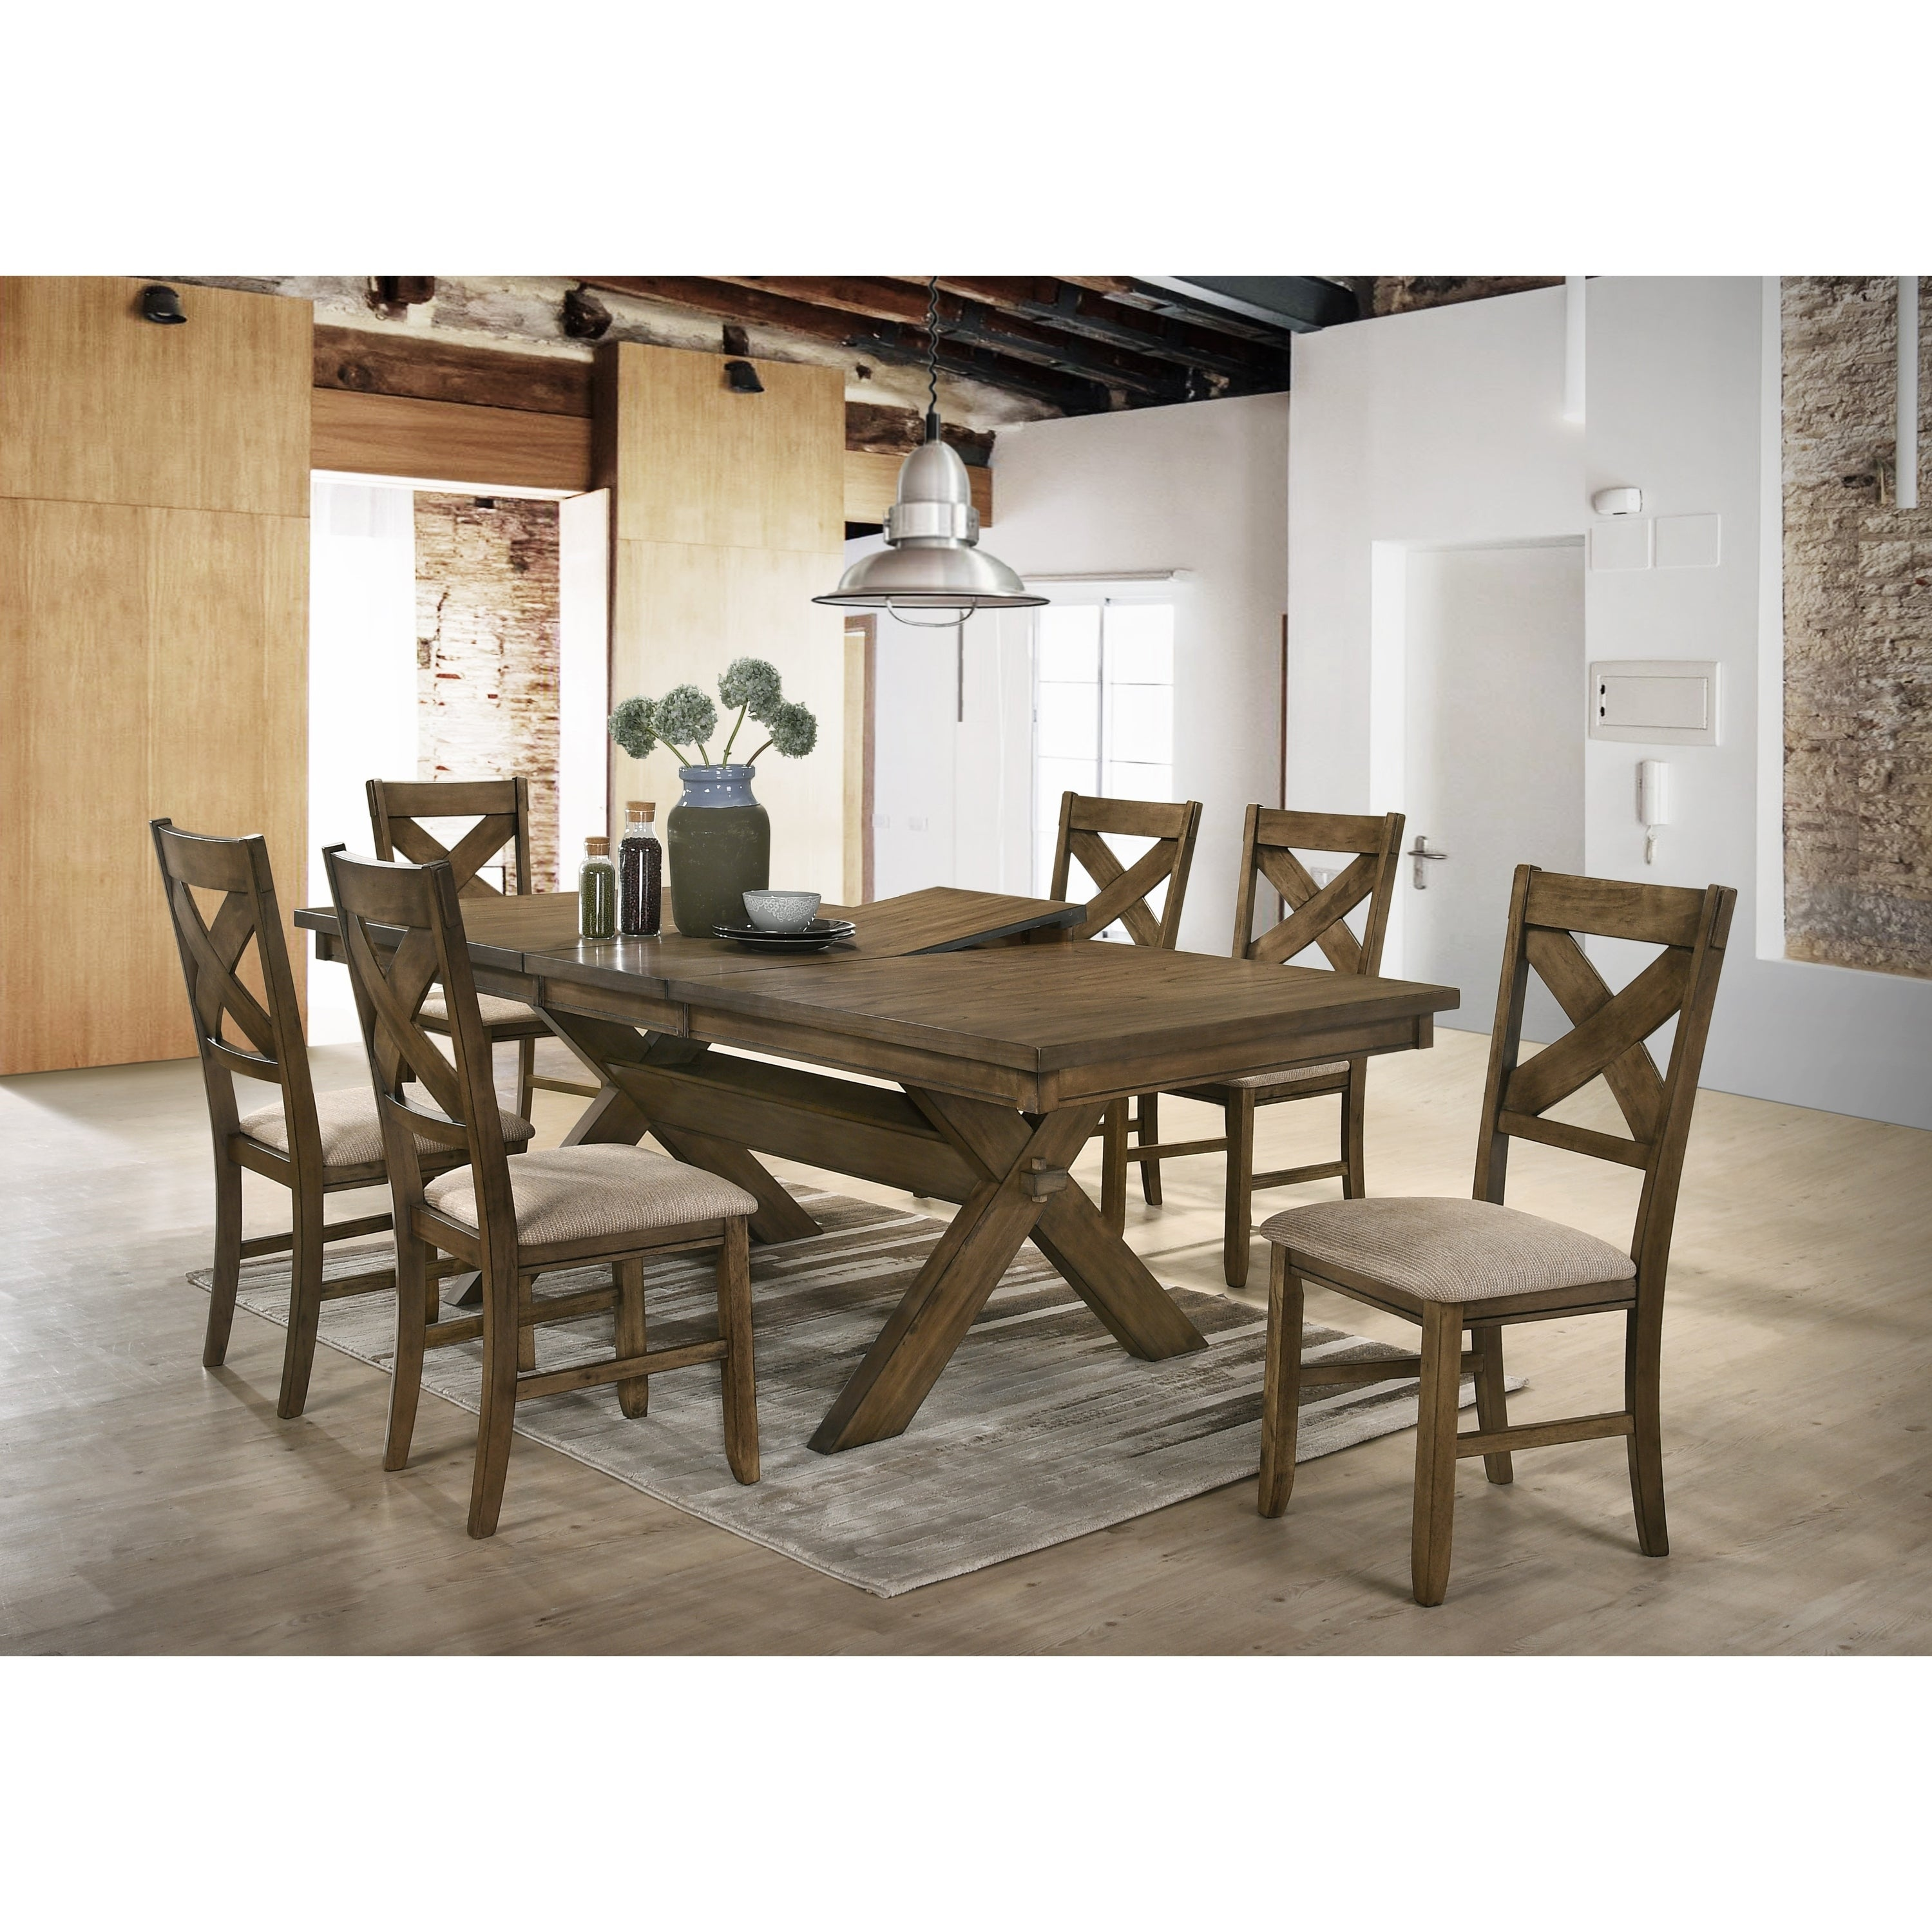 Superieur Raven Wood Dining Set: Butterfly Leaf Table, Six Chairs